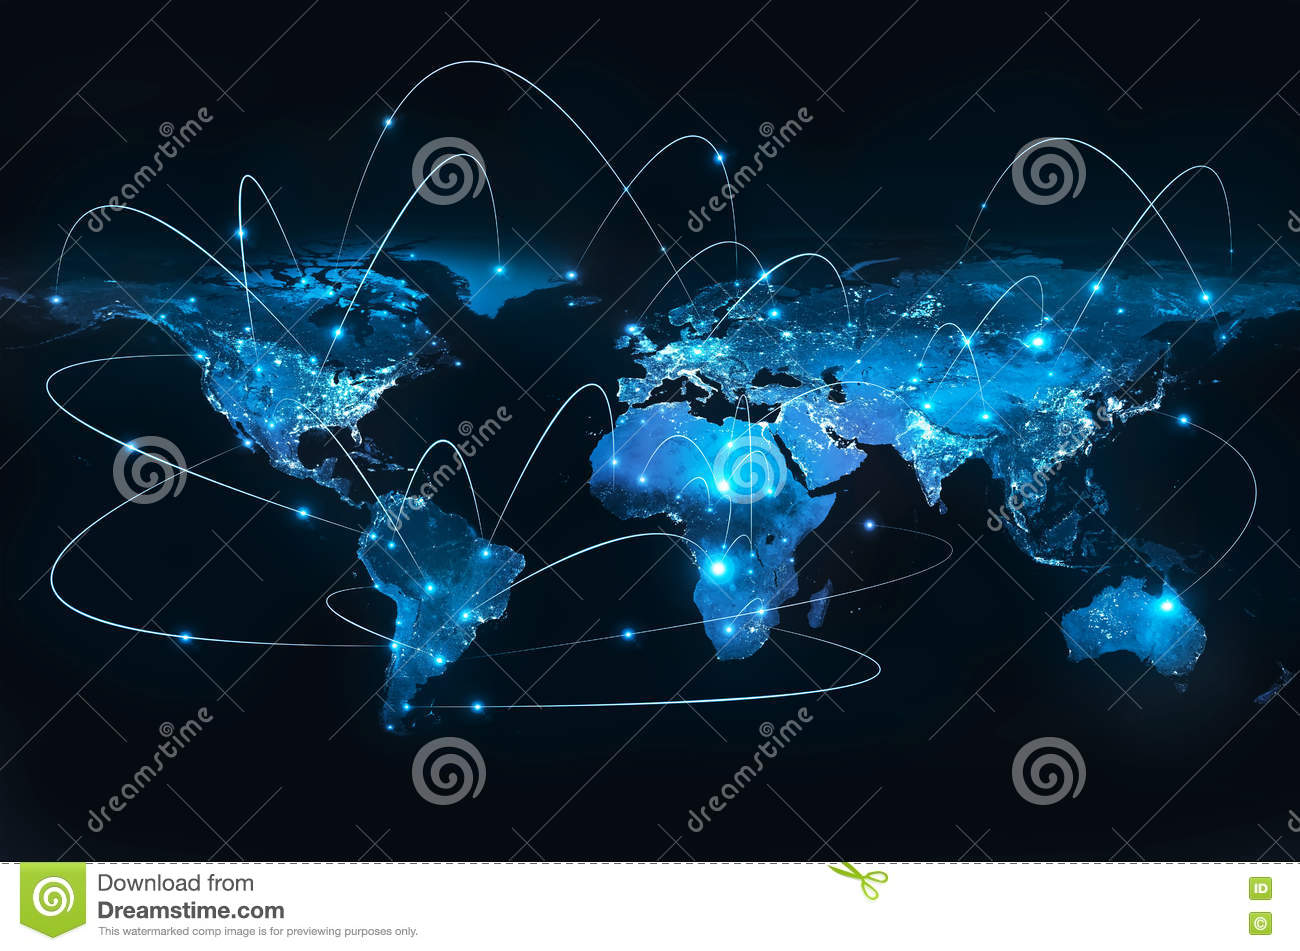 Earth from Space. Best Internet Concept of global business from concepts series. Elements of this image furnished by